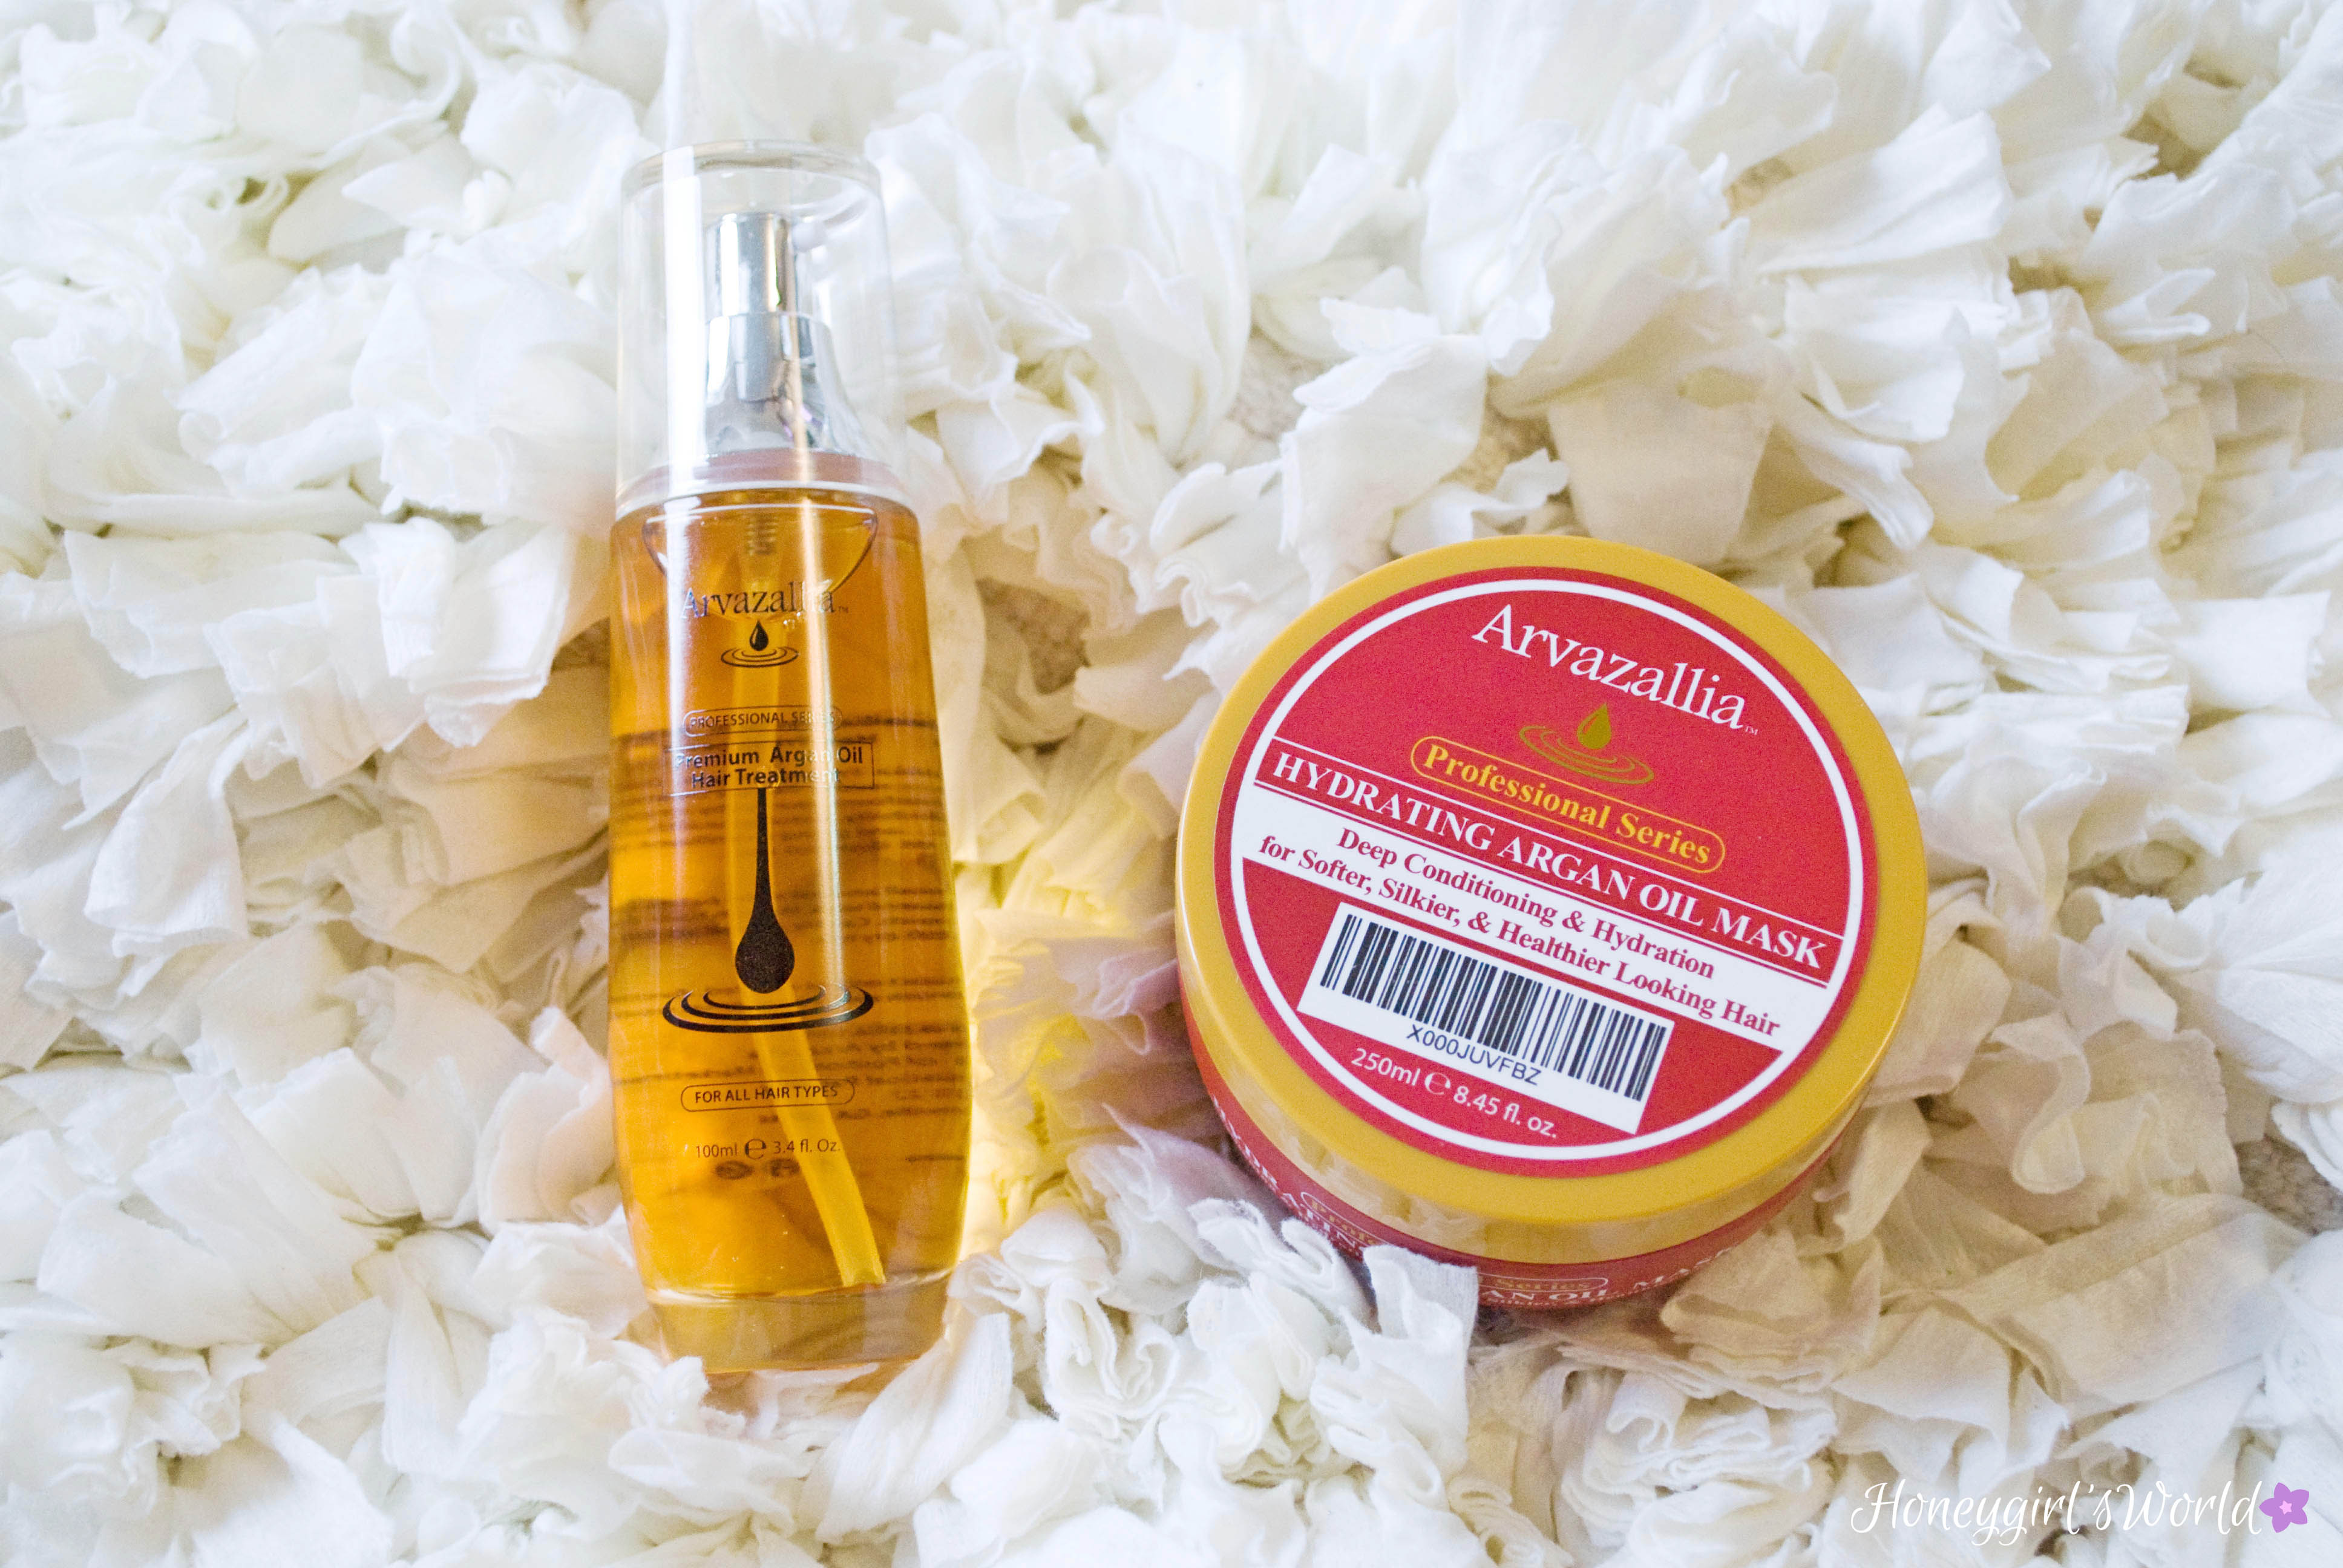 Arvazallia Professional Series Hydrating Argan Oil Treatments